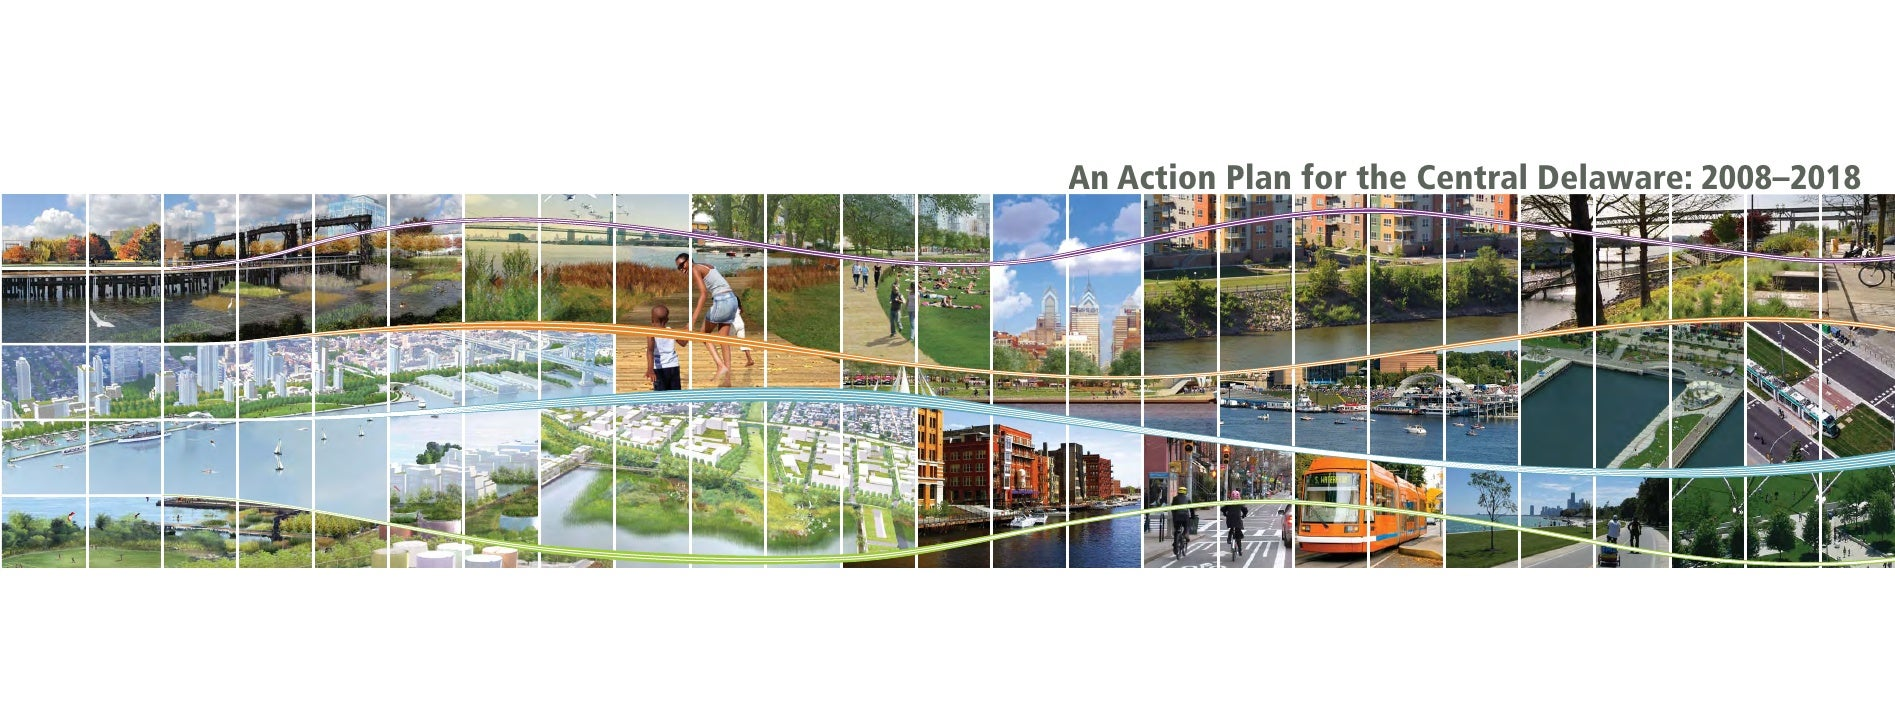 Action Plan for the Central Delaware: 2008-2018